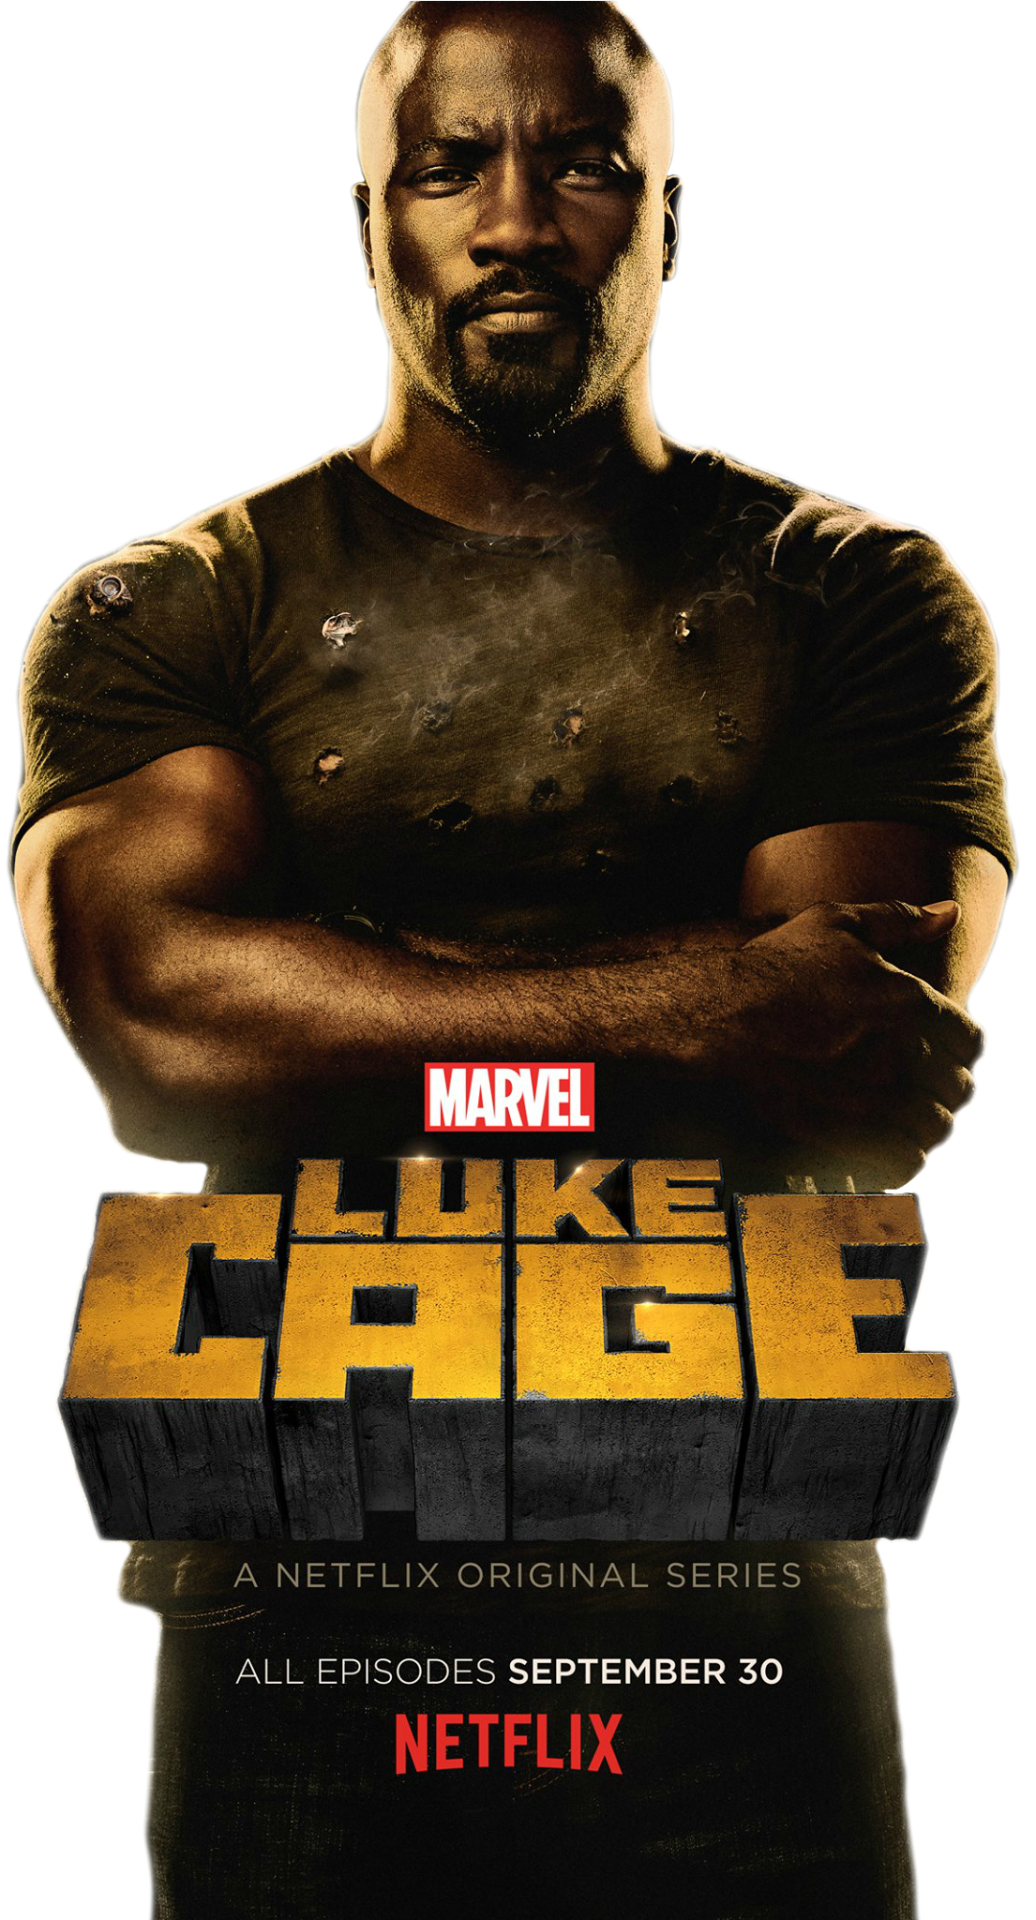 Luke cage png. Home to transparent superheroes